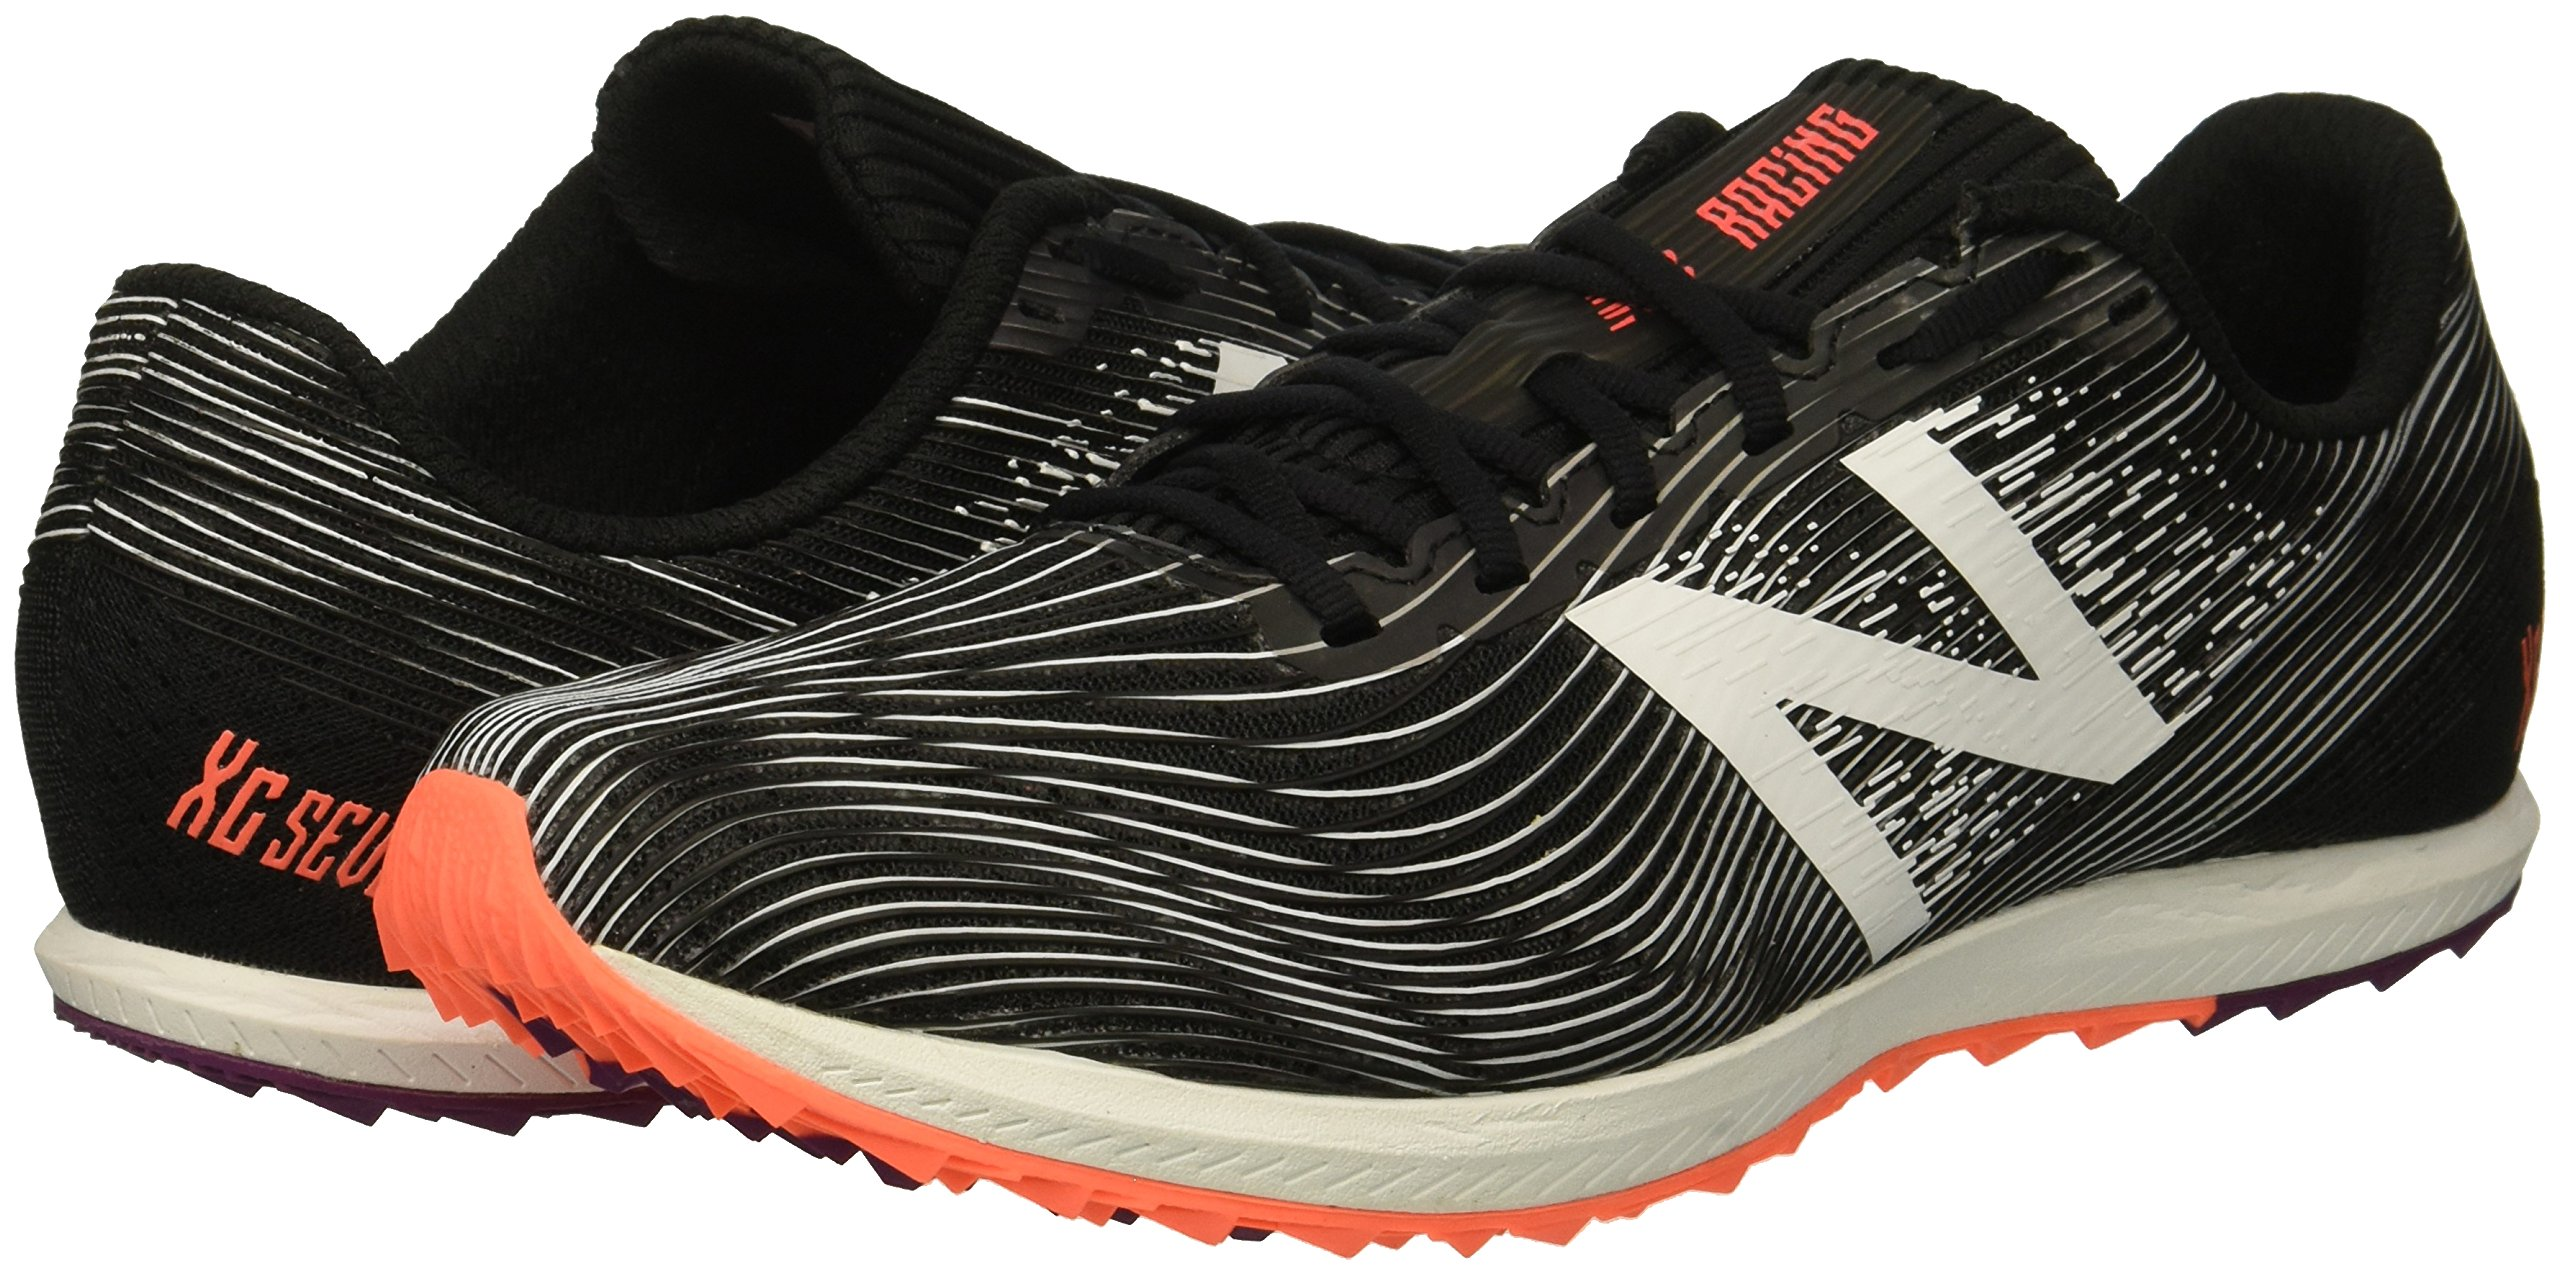 New Balance Women's 7v1 Cross Country Running Shoe, Black, 6.5 B US by New Balance (Image #5)